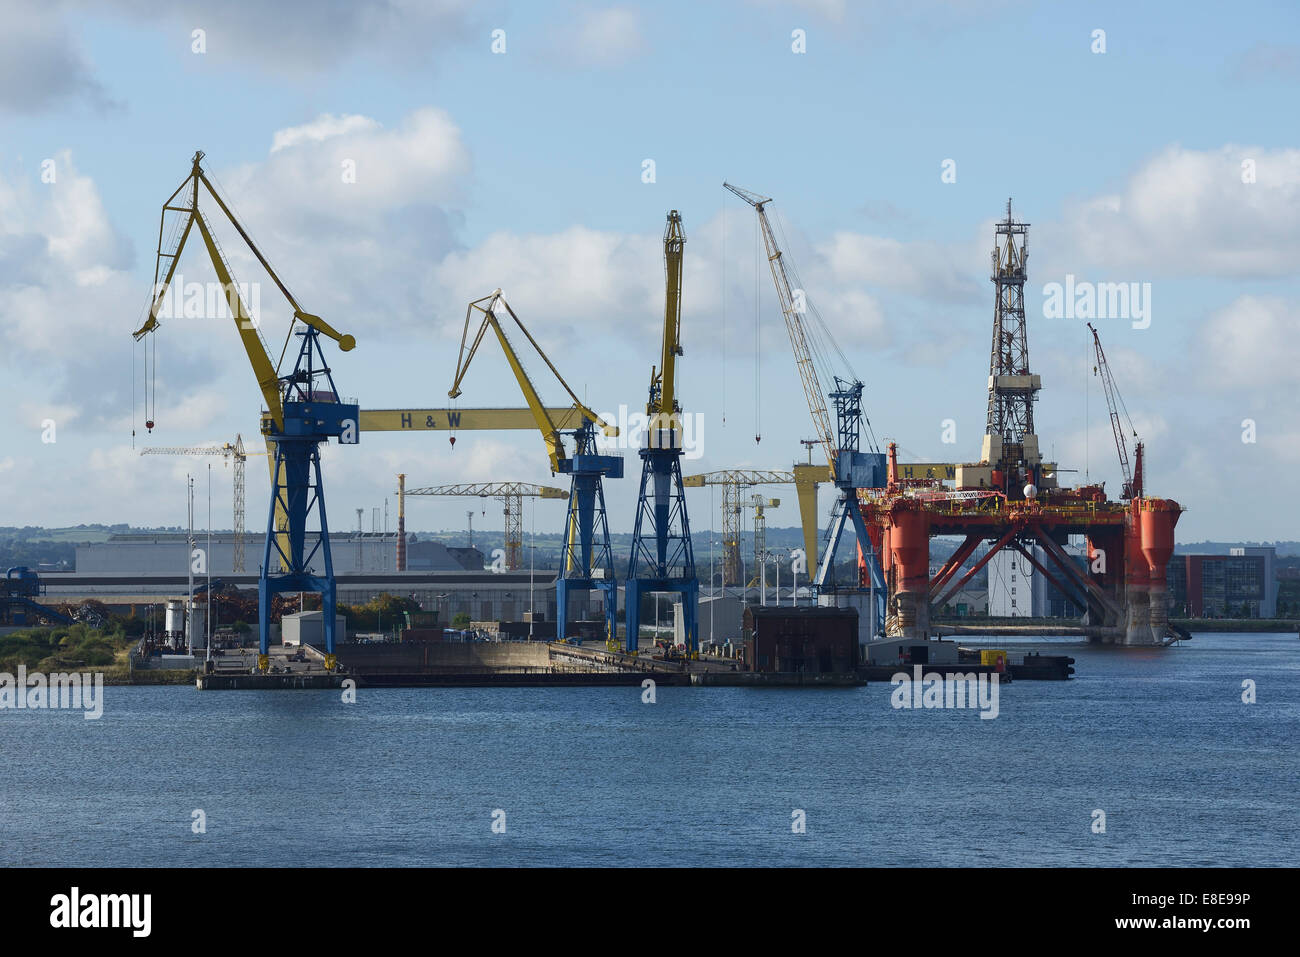 The Harland and Wolff gantry cranes plus the Borgny Dolphin oil rig platform in Belfast Harbour - Stock Image